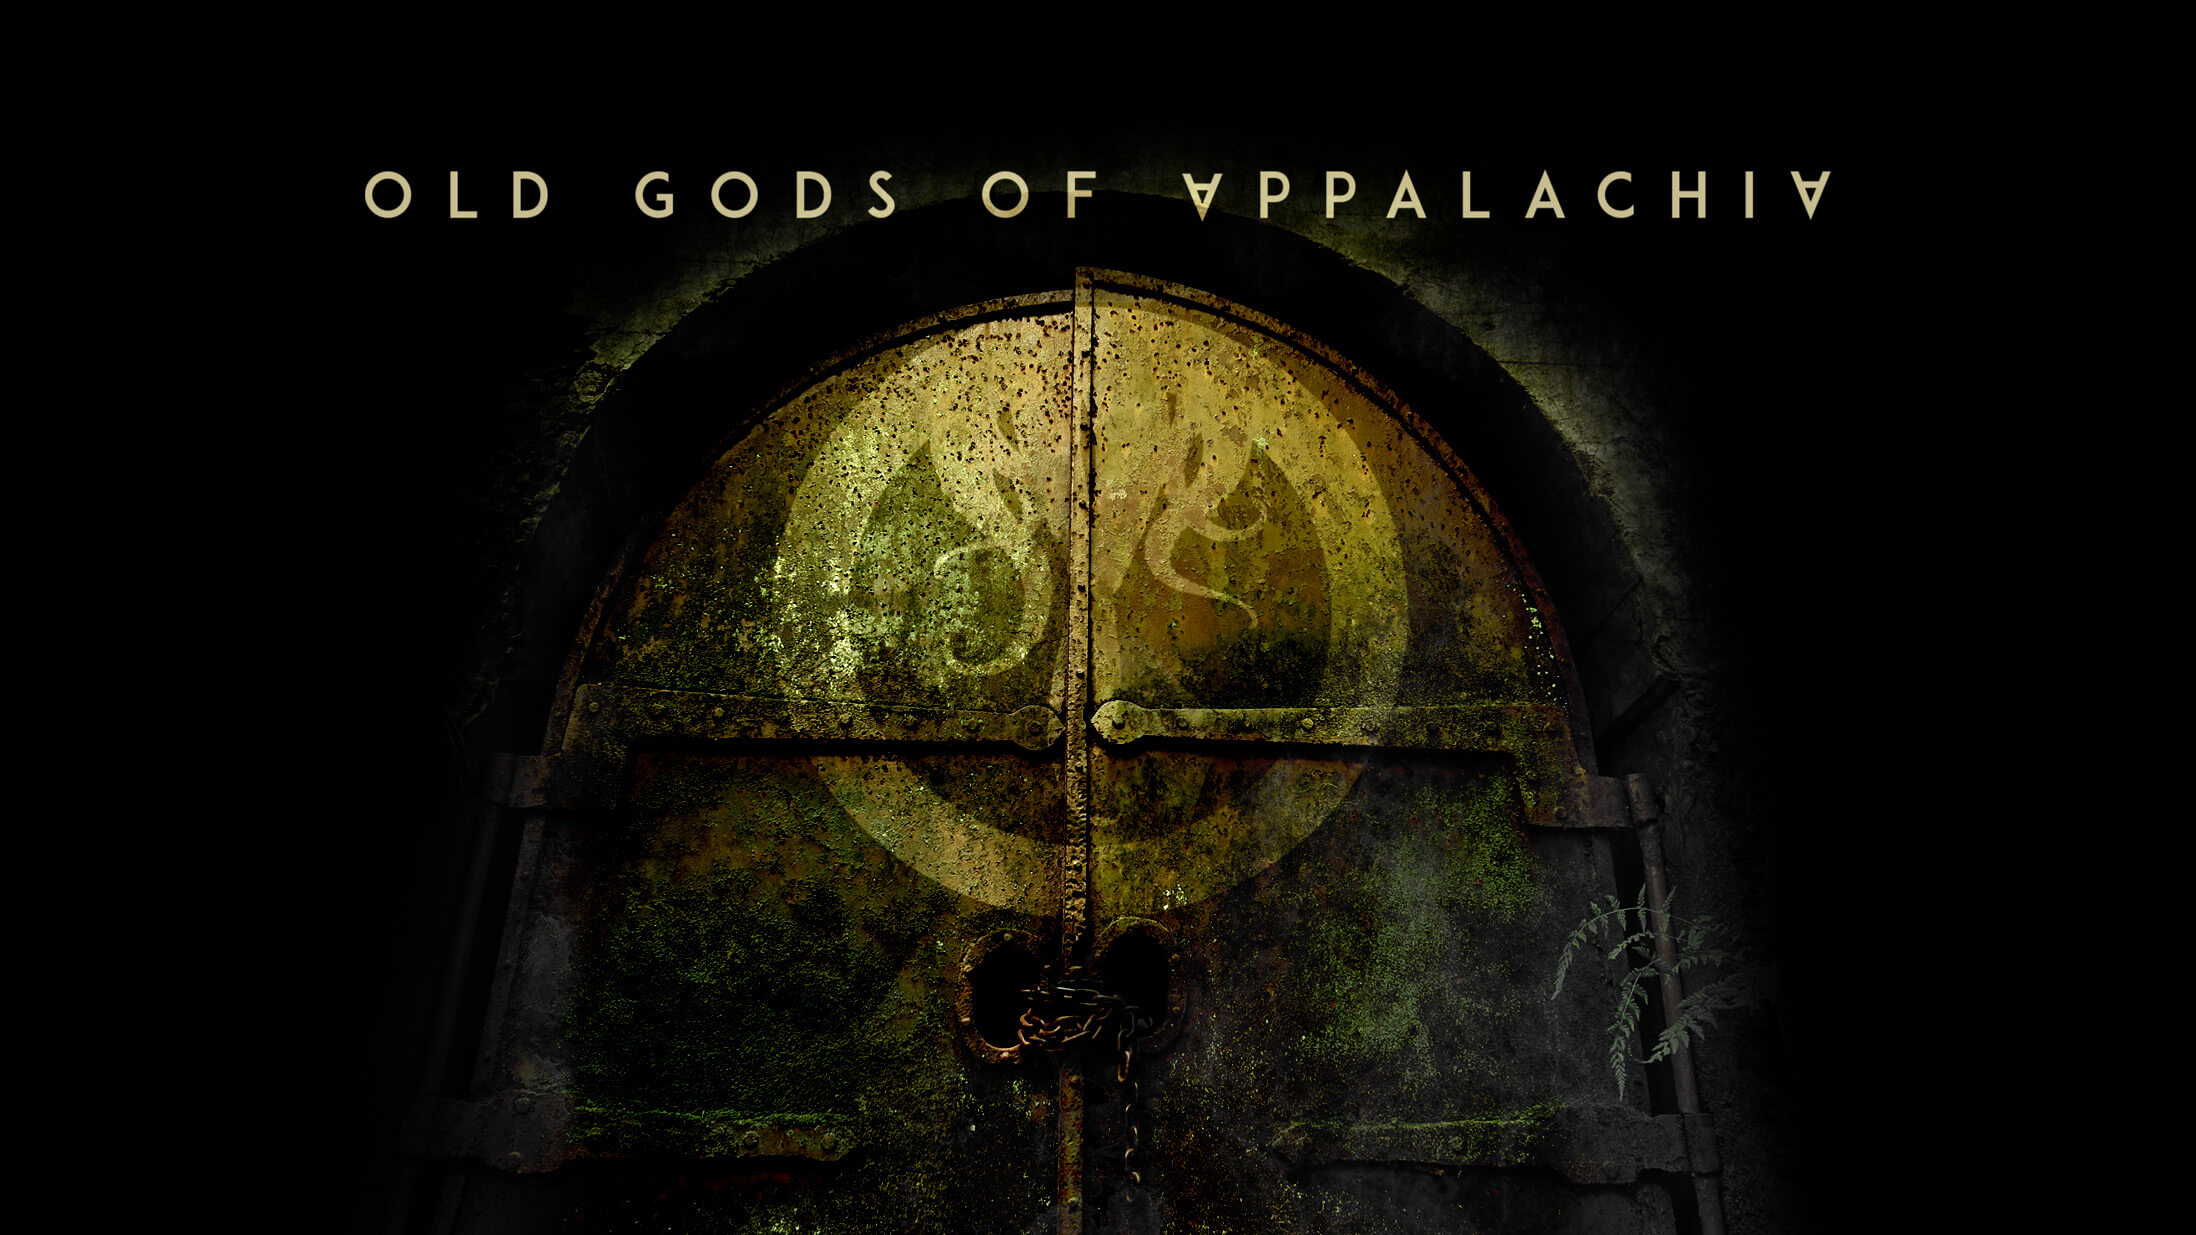 Old Gods of Appalachia Horror Podcasts